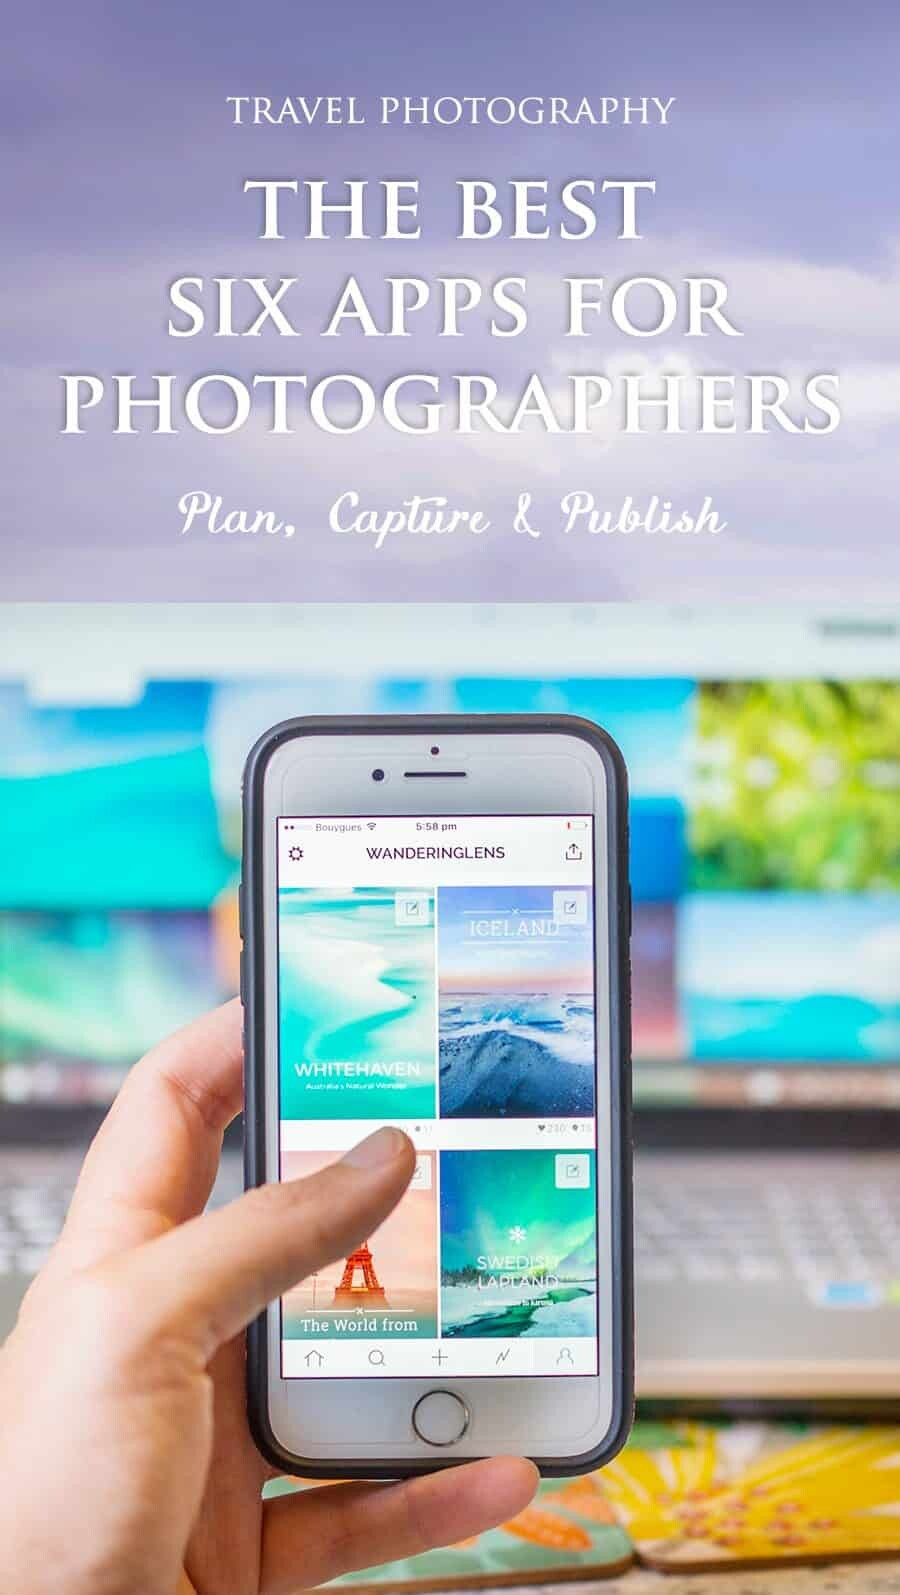 The Best Apps for Travel Photographers